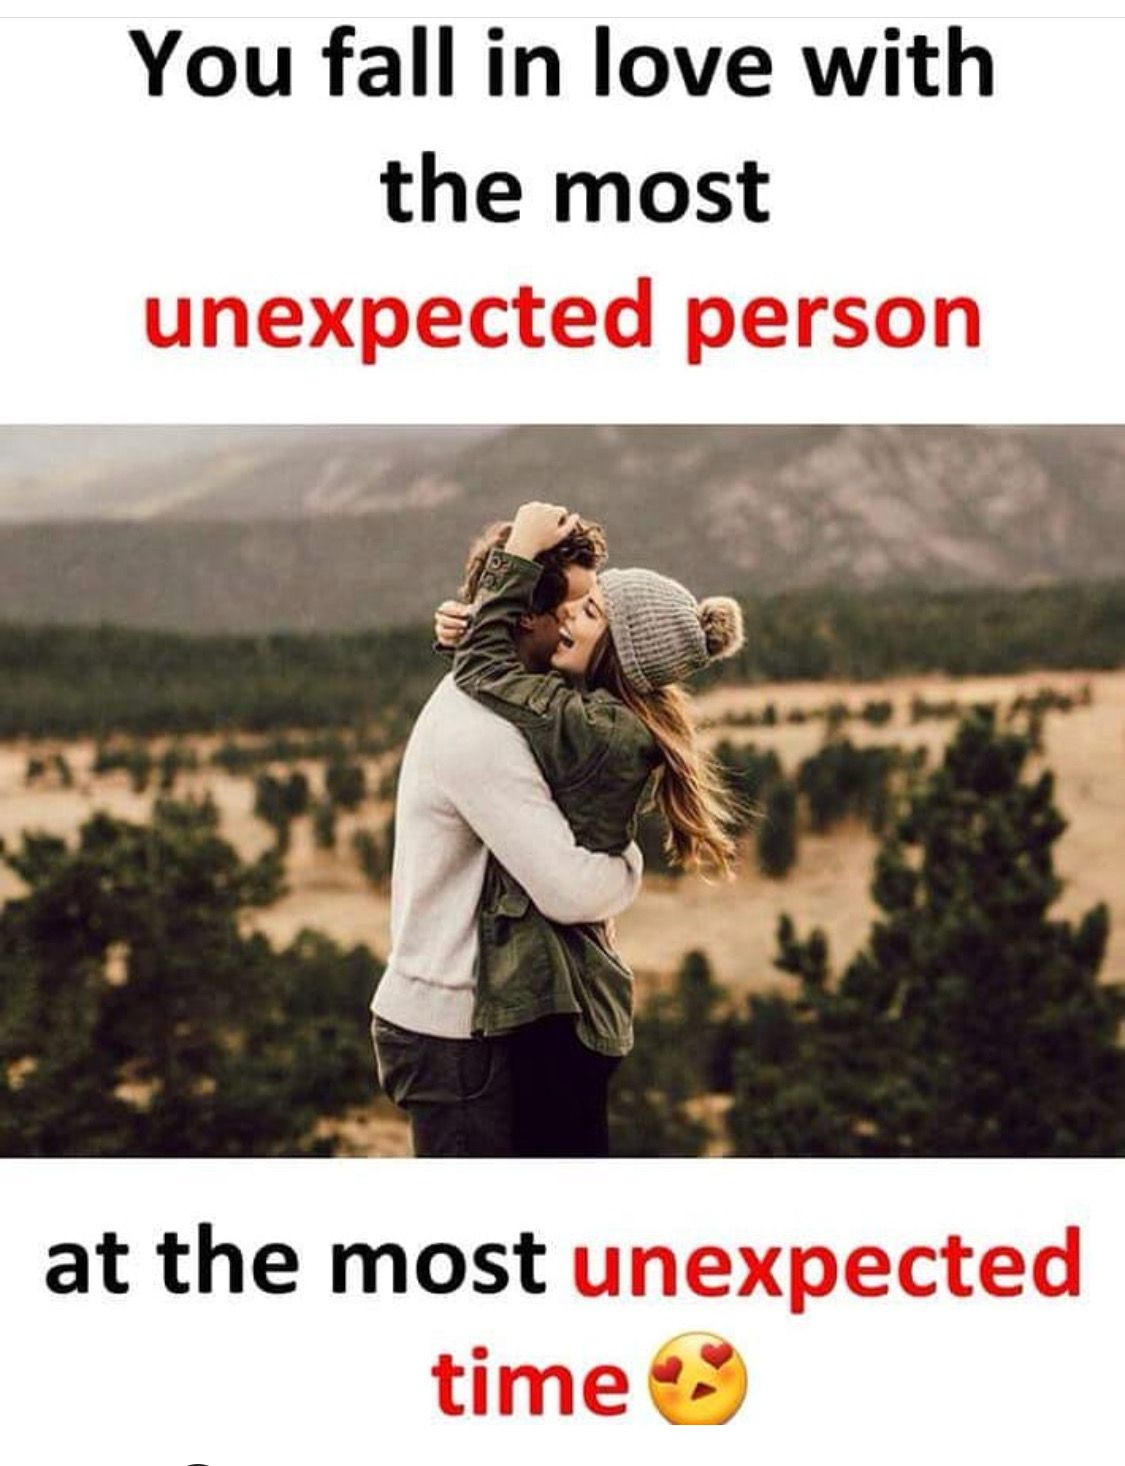 Pin By Elizabeth Holman On Qoutes Cute Relationships Adventure Quotes Daily Memes